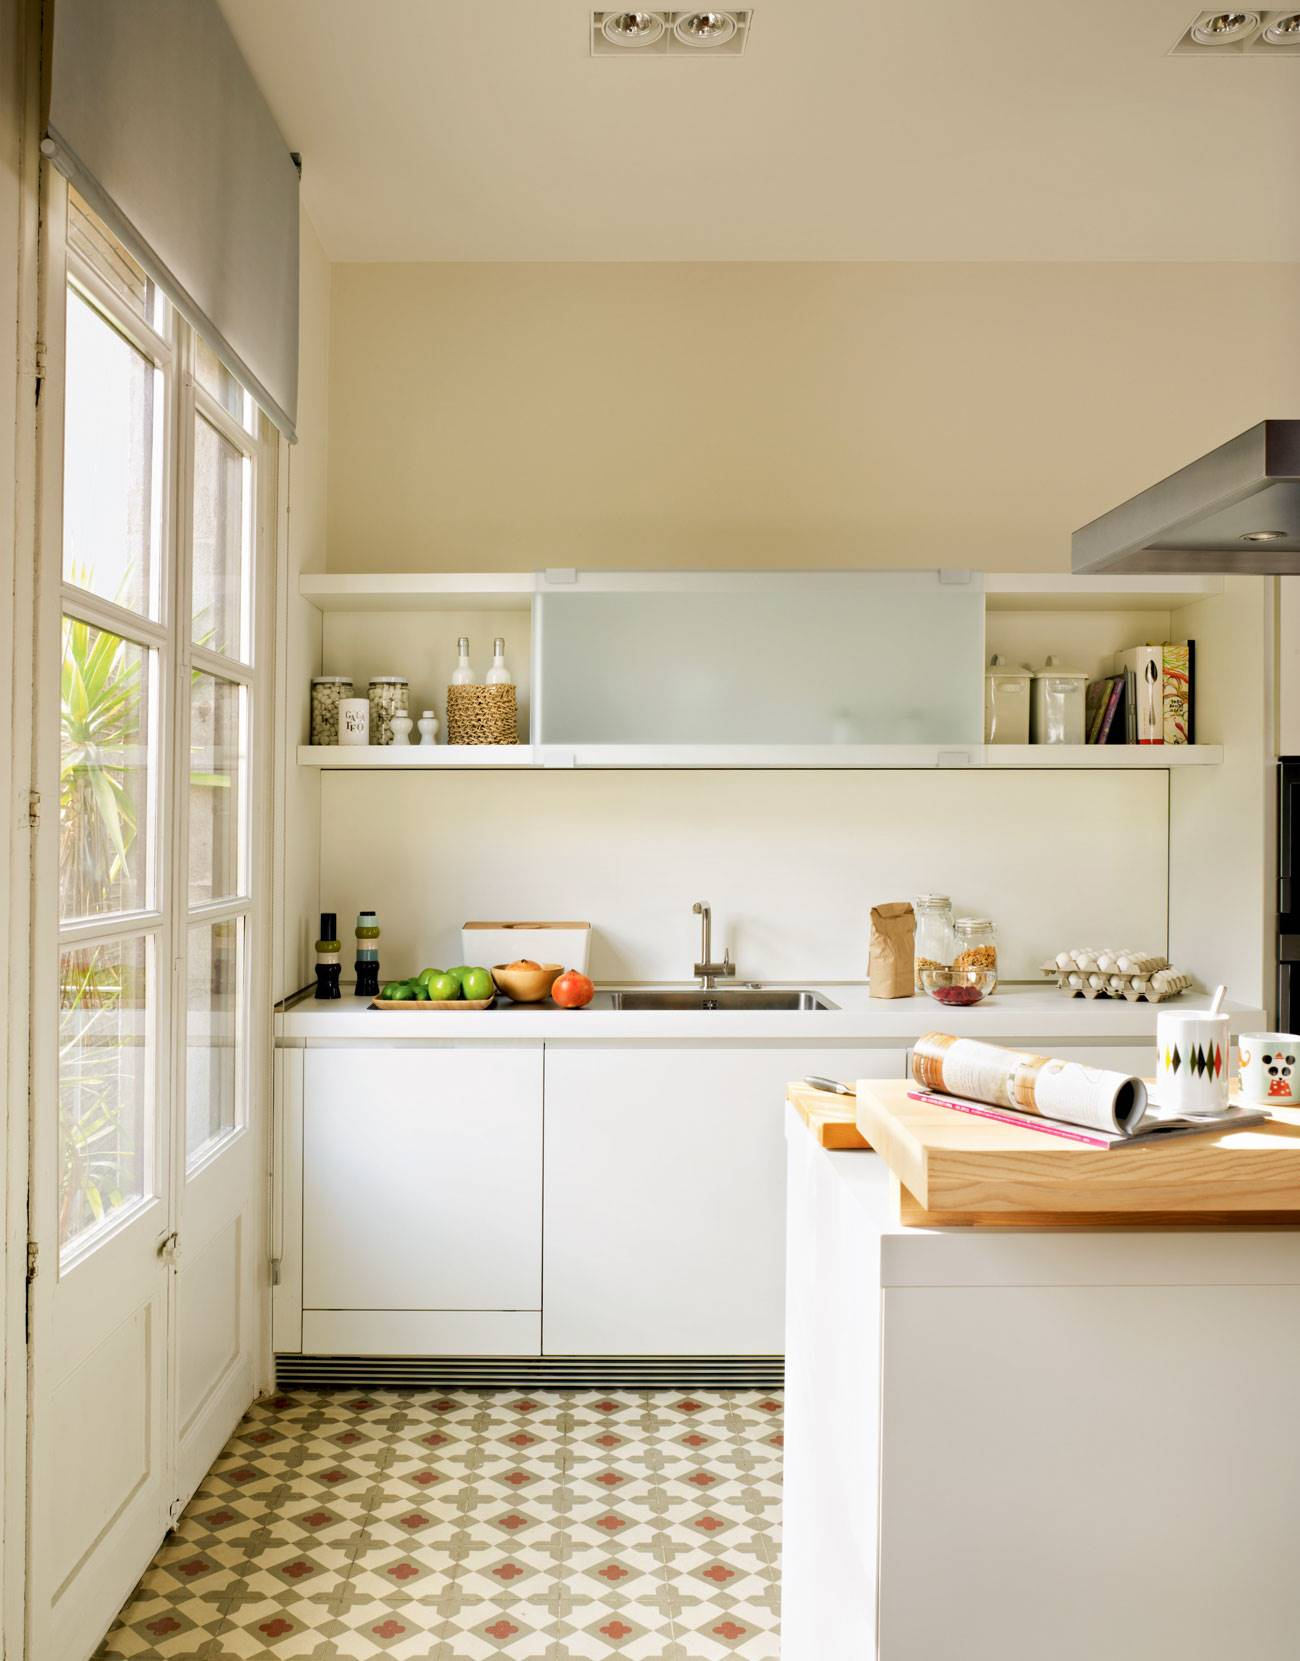 white-kitchen-with-mosaic-floor-and-natural-light 337216. Bathed in light